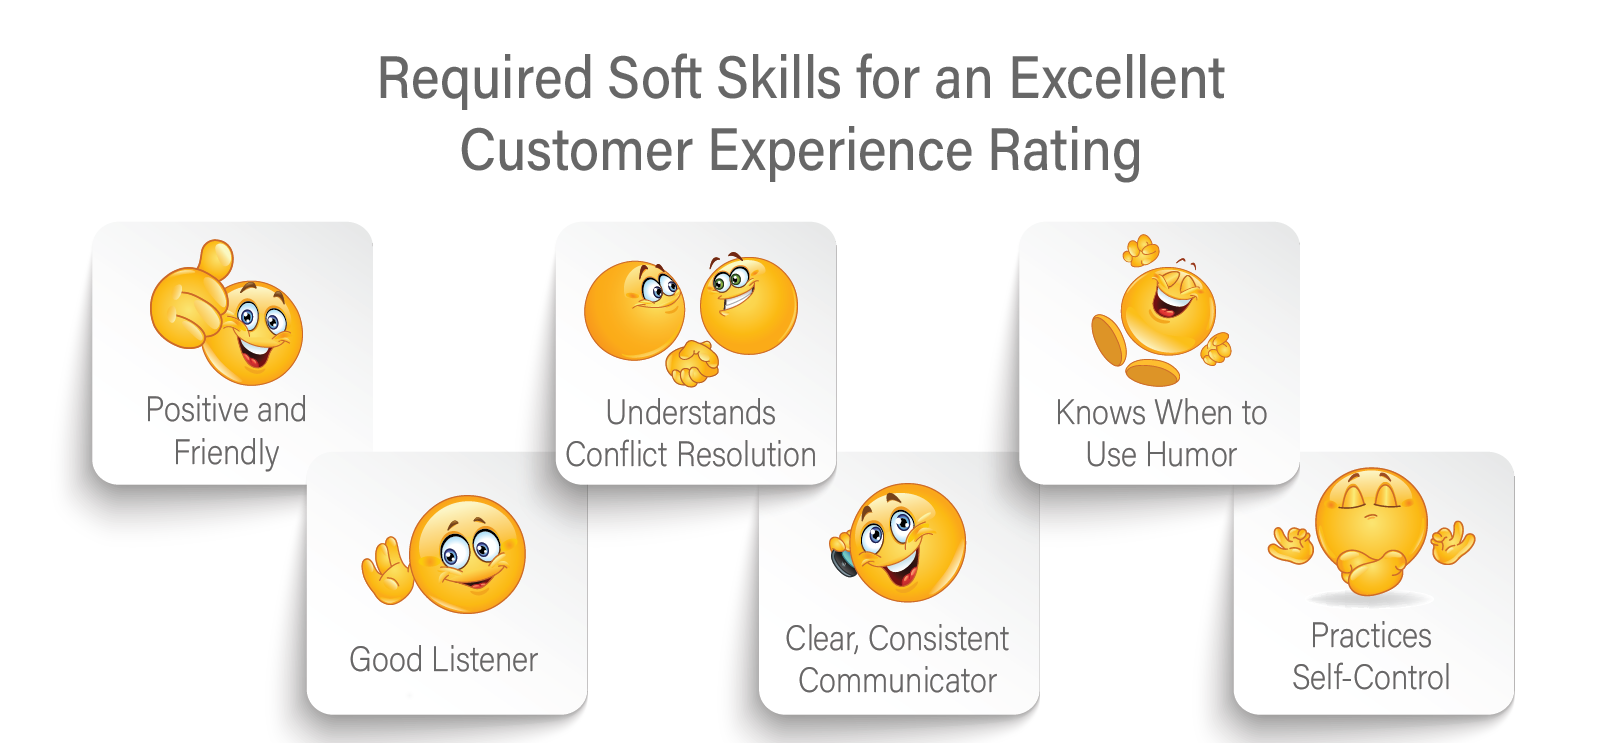 Customer Feedback Scores - Required Soft Skills for an Excellent CX rating